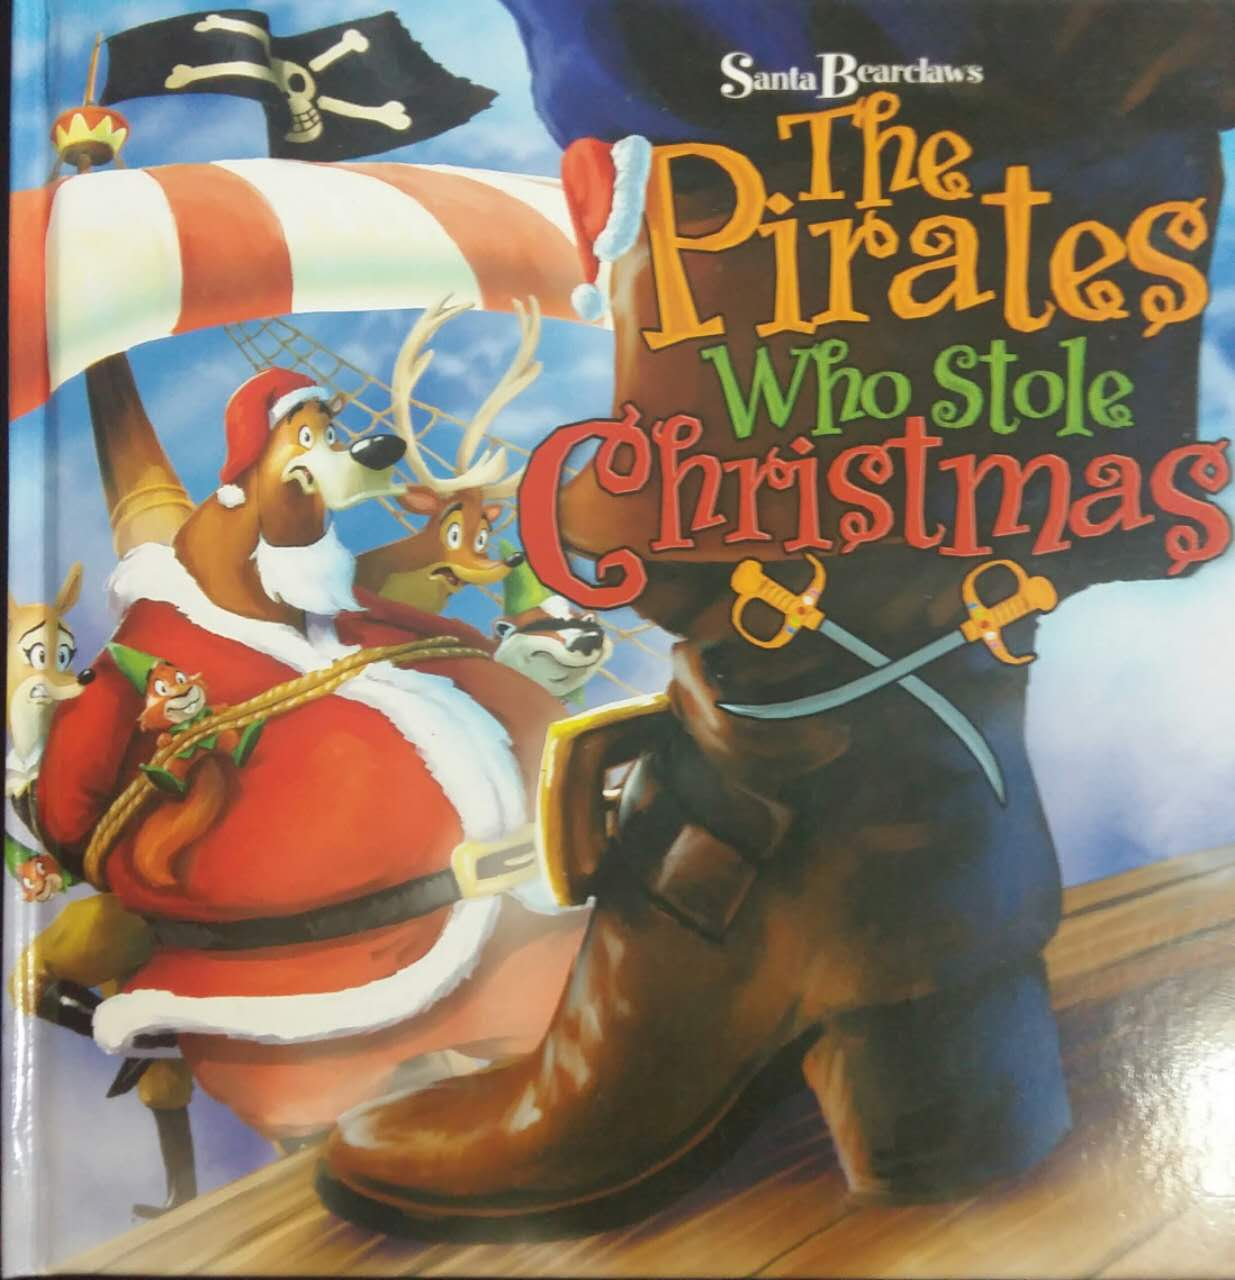 The Pirates Who Stole Christmas